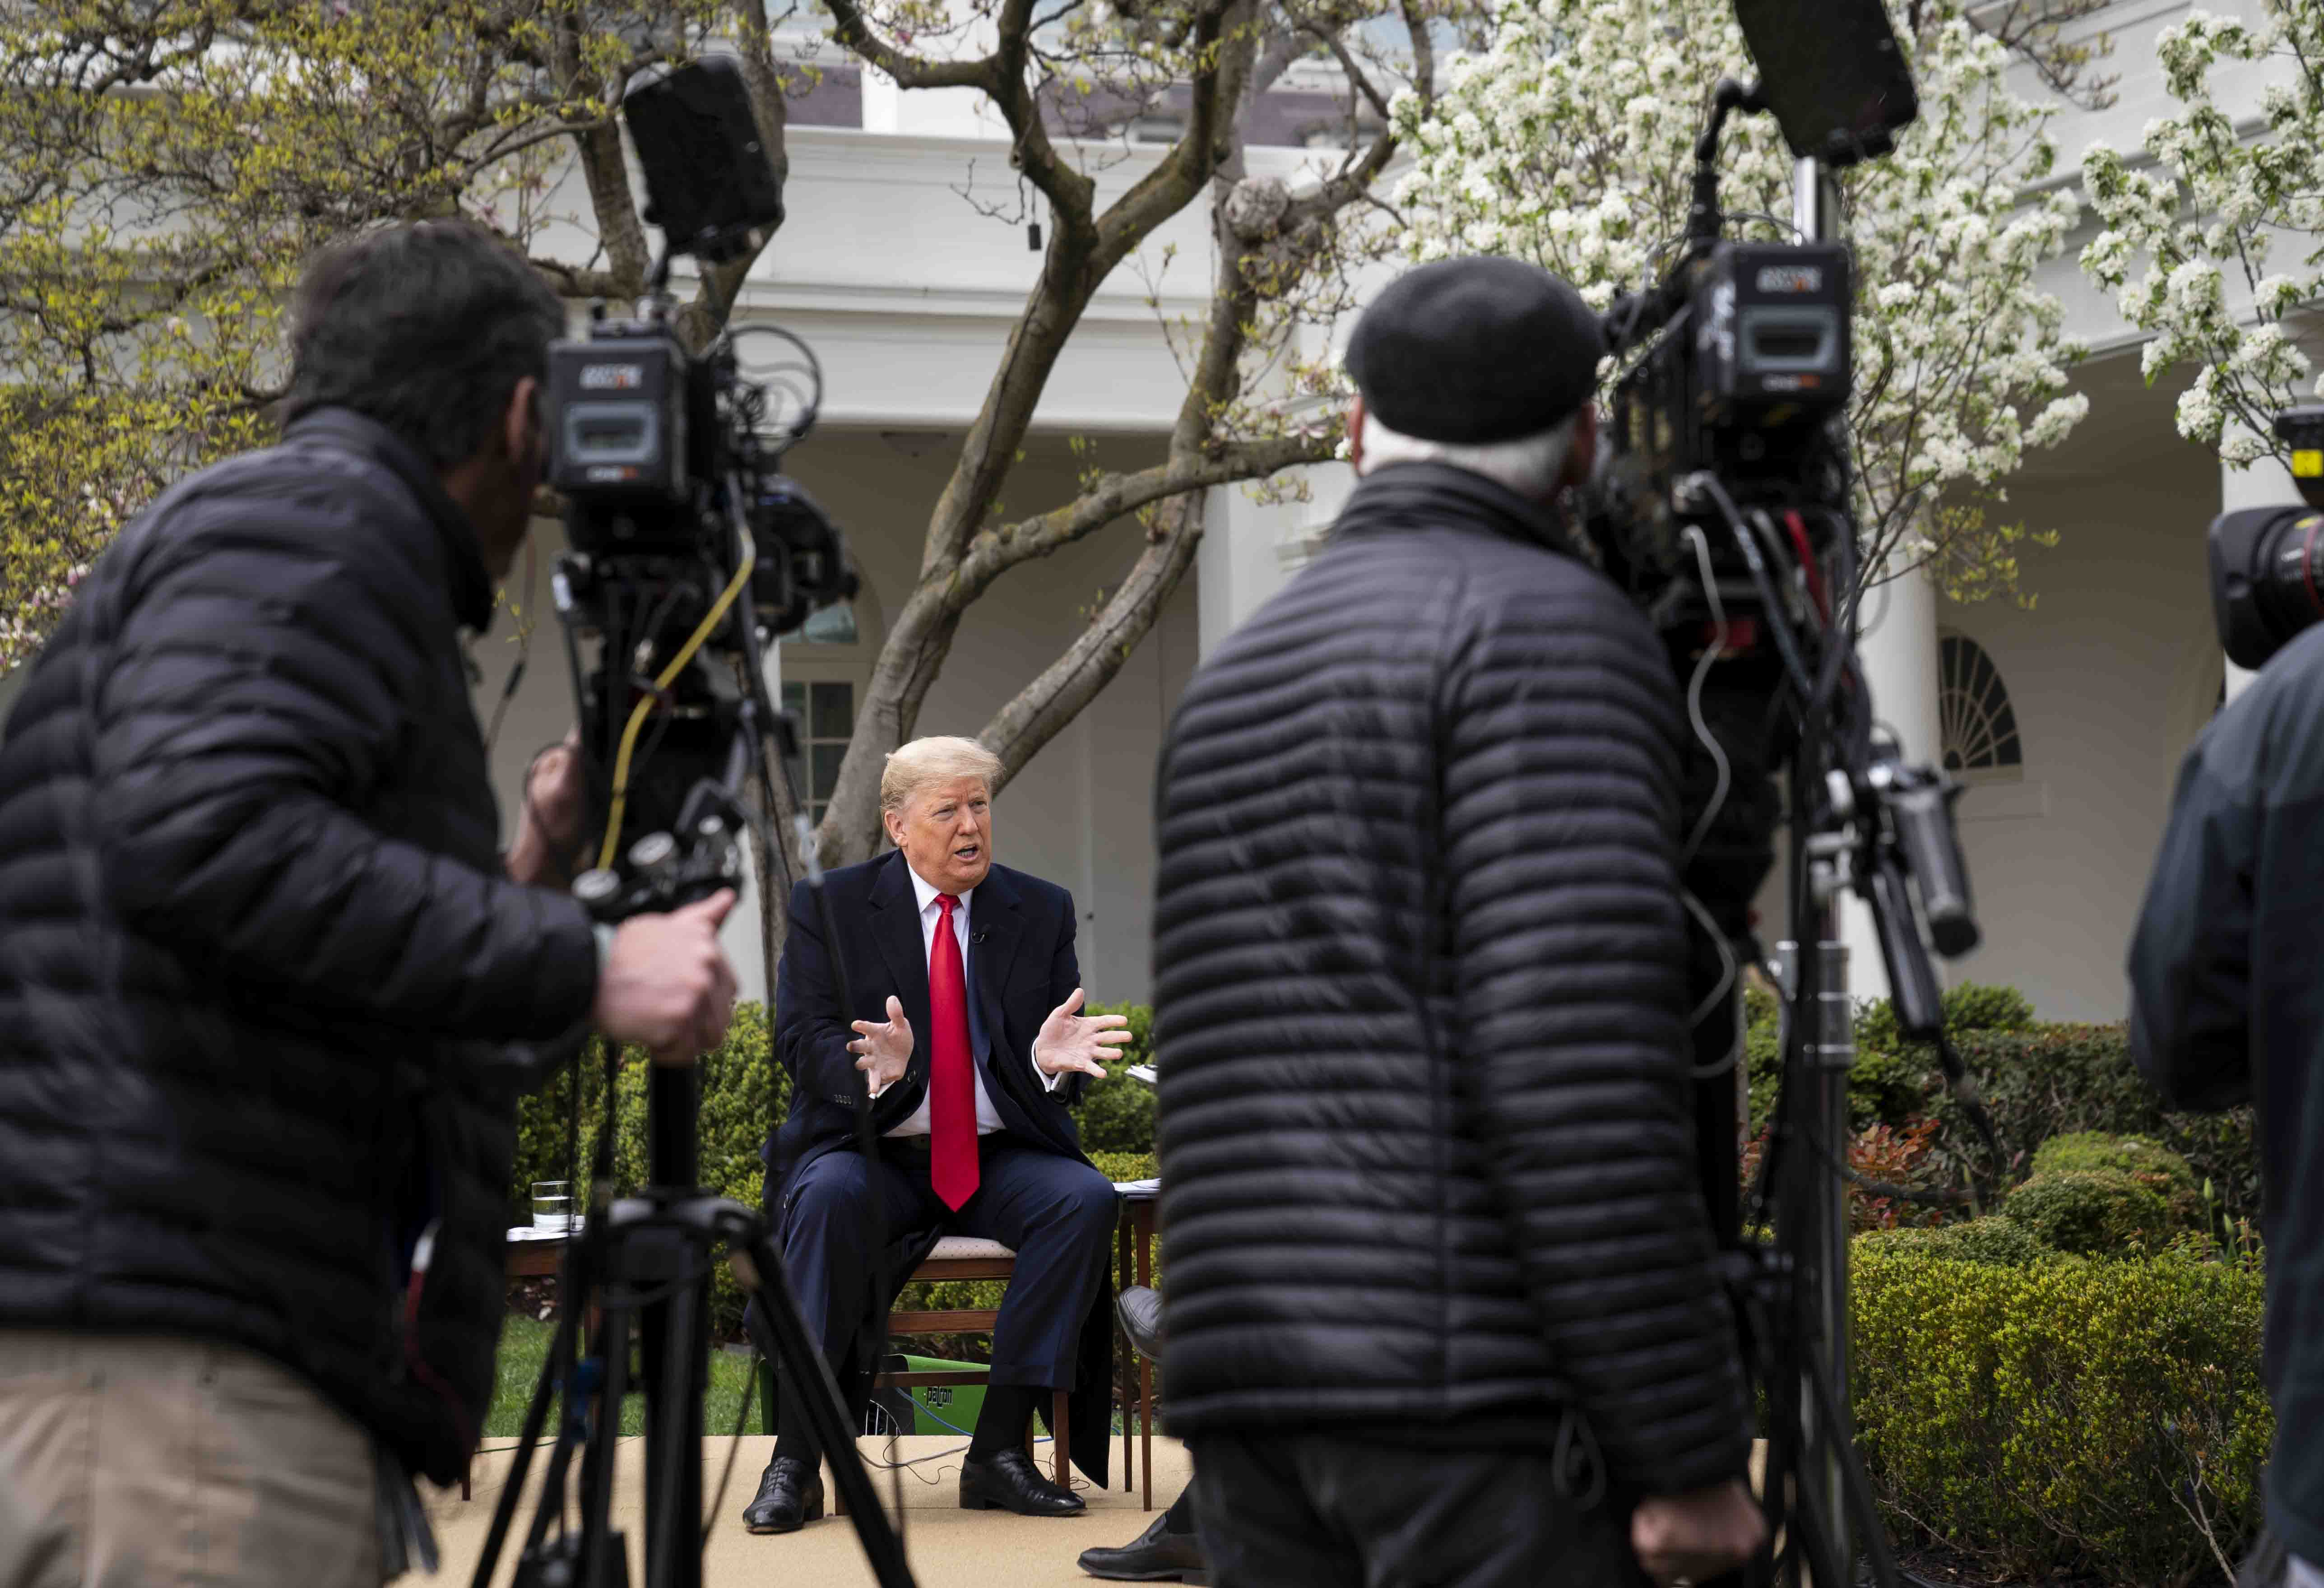 WASHINGTON, DC - MARCH 24: U.S. President Donald Trump participates in a Fox News Virtual Town Hall with Anchor Bill Hemmer, in the Rose Garden of the White House on March 24, 2020 in Washington, DC. Cases of COVID-19 continue to rise in the United States, with New York's case count doubling every three days according to governor Andrew Cuomo. (Photo by Doug Mills-Pool/Getty Images)